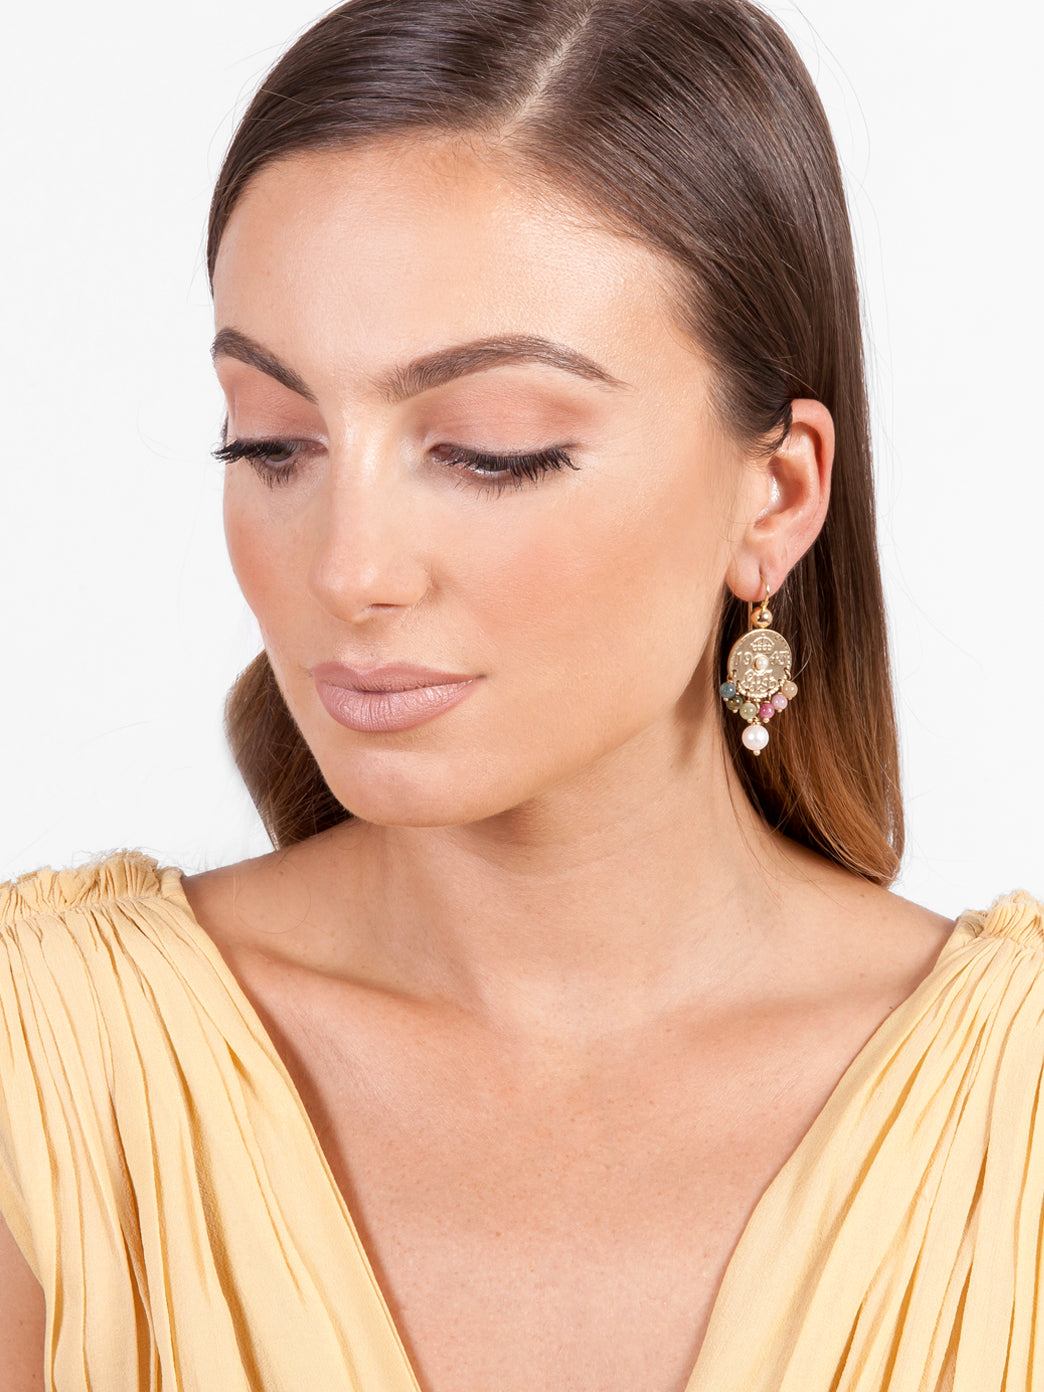 Fiorina Jewellery Gold Joy Earrings Model